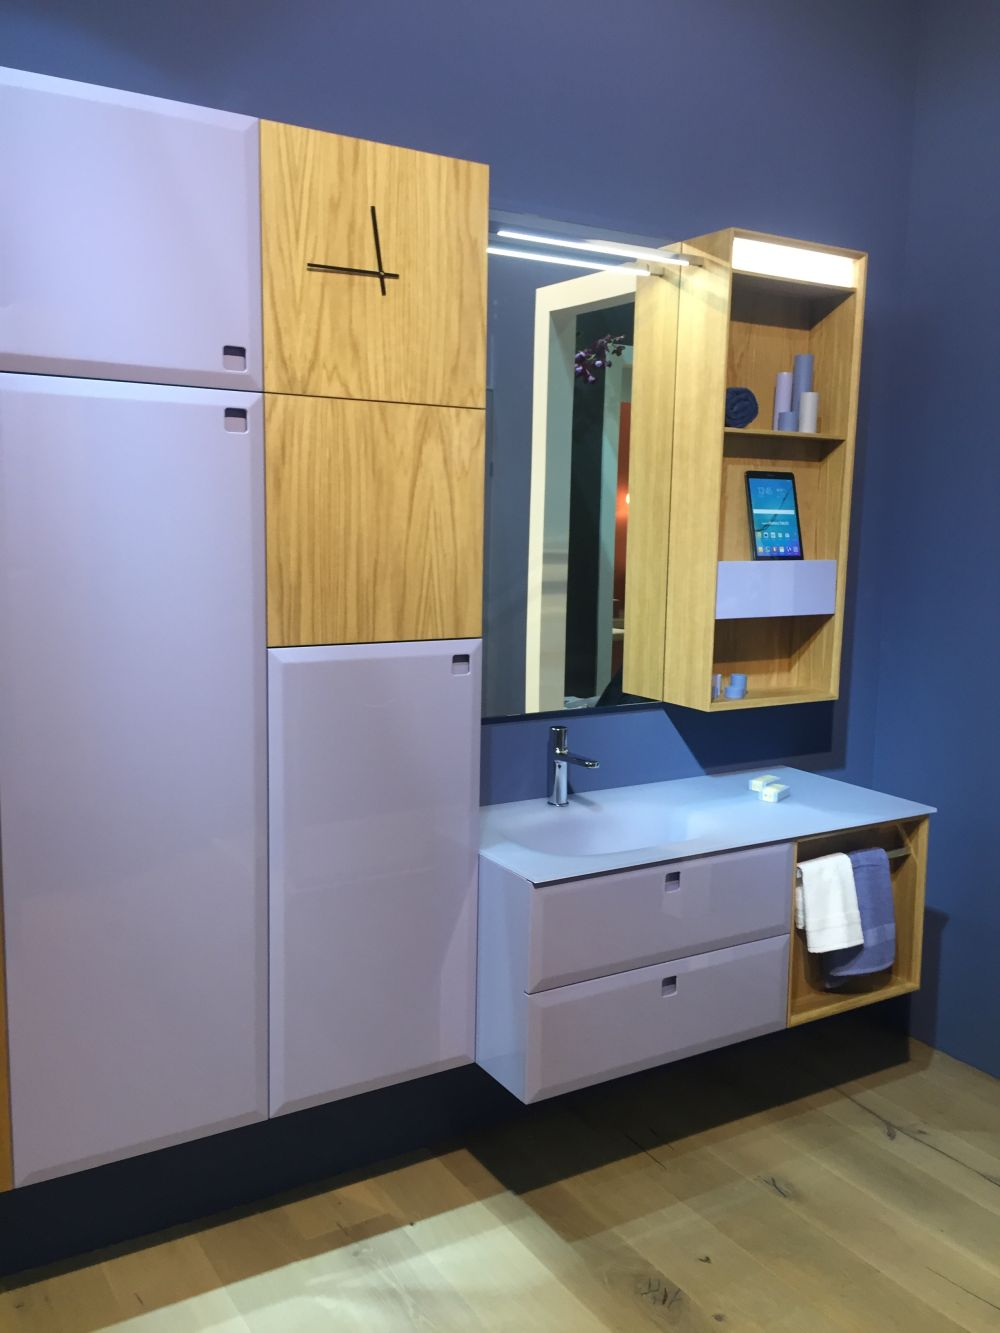 Large bathroom cabinets provide enough room inside for laundry hampers, linens and all sorts of other things